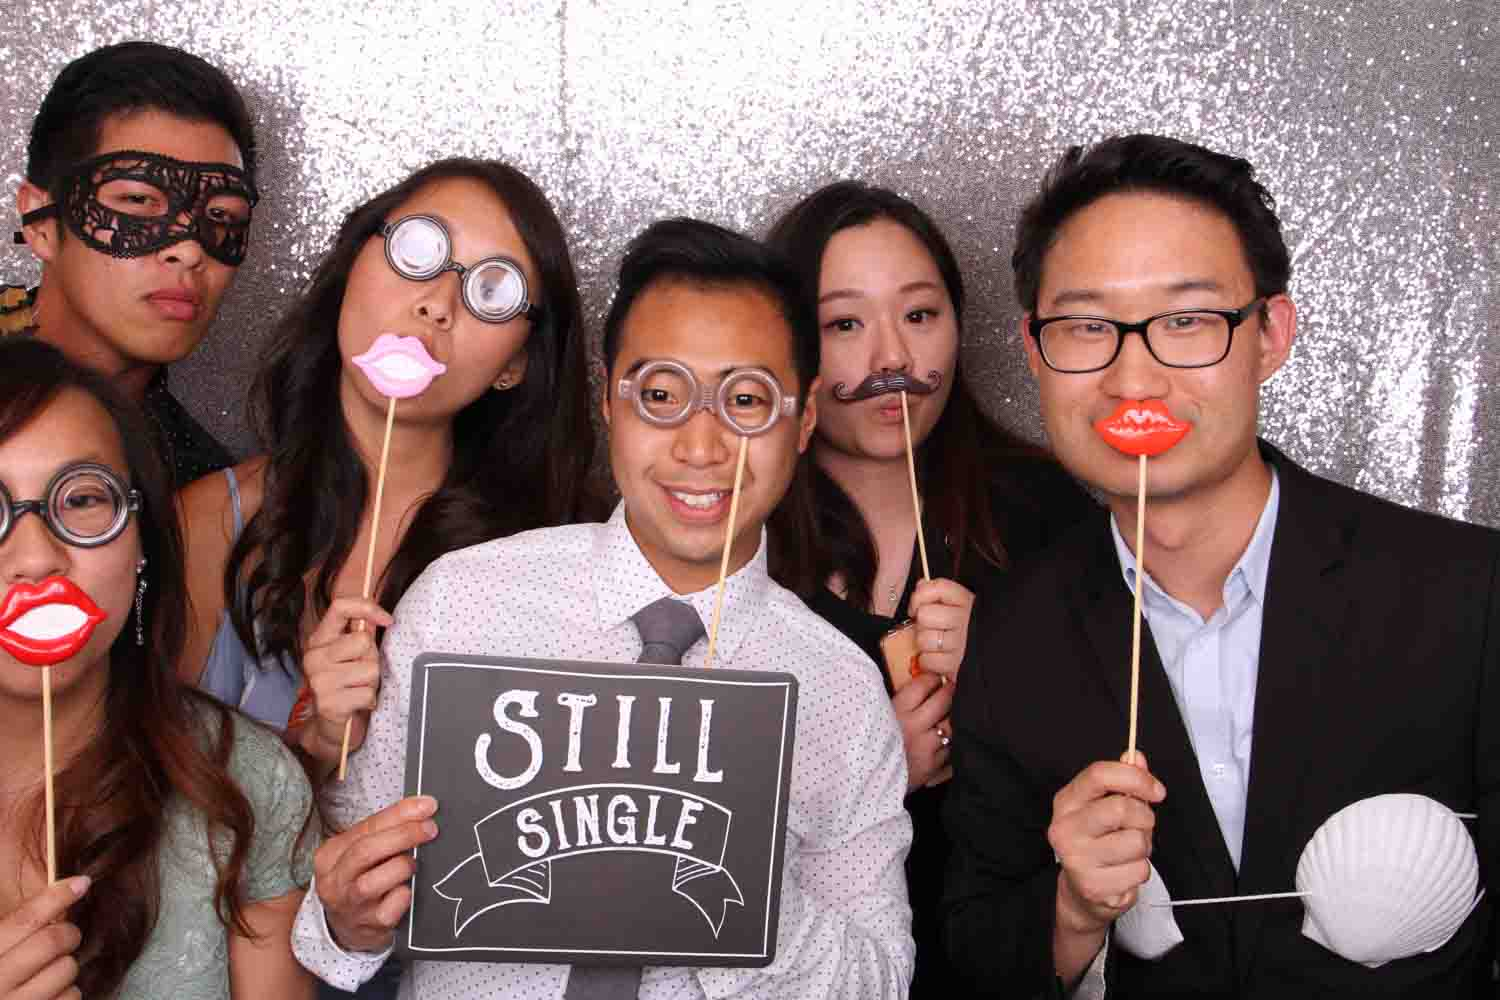 Chico Wedding Photo Booth-Big Hearts Photo Booth-6.jpg